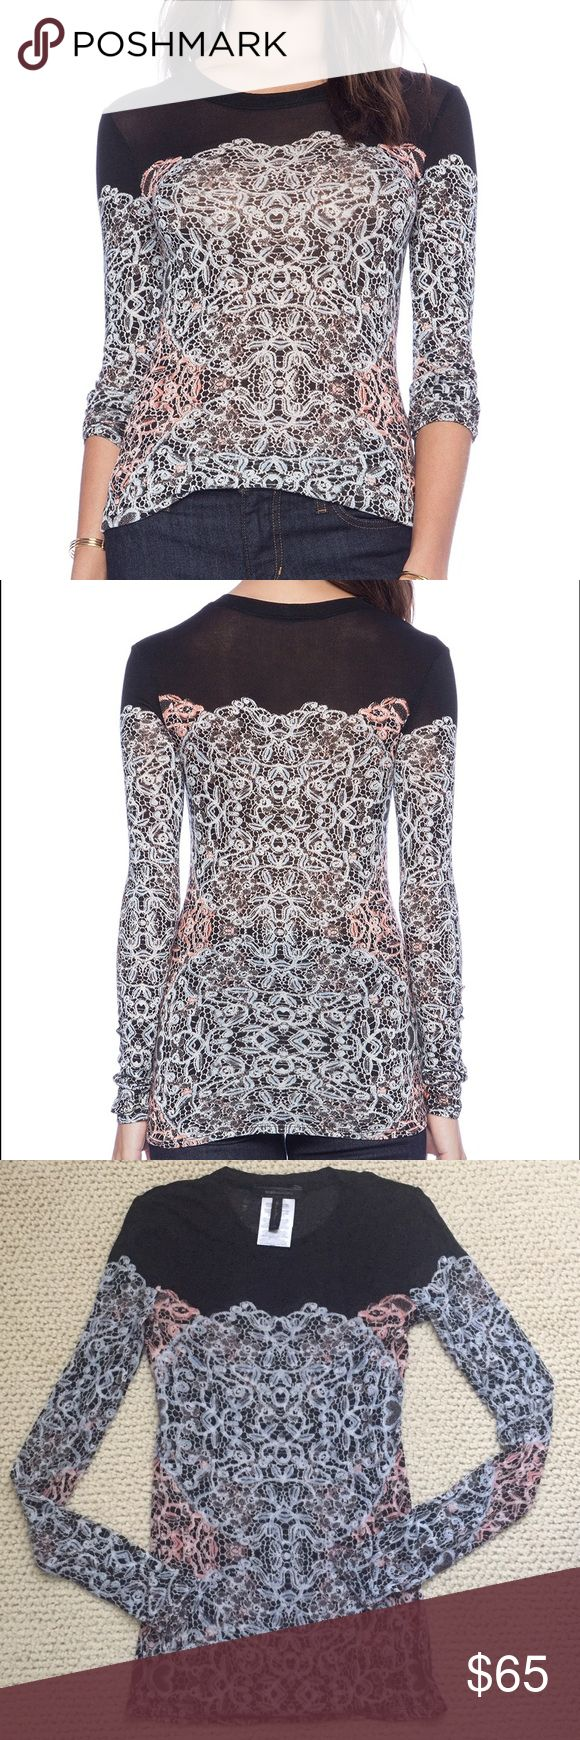 BcbgMaxAzria top Used once washed once. Exellent condicion like new! No return No trade! BCBGMaxAzria Tops